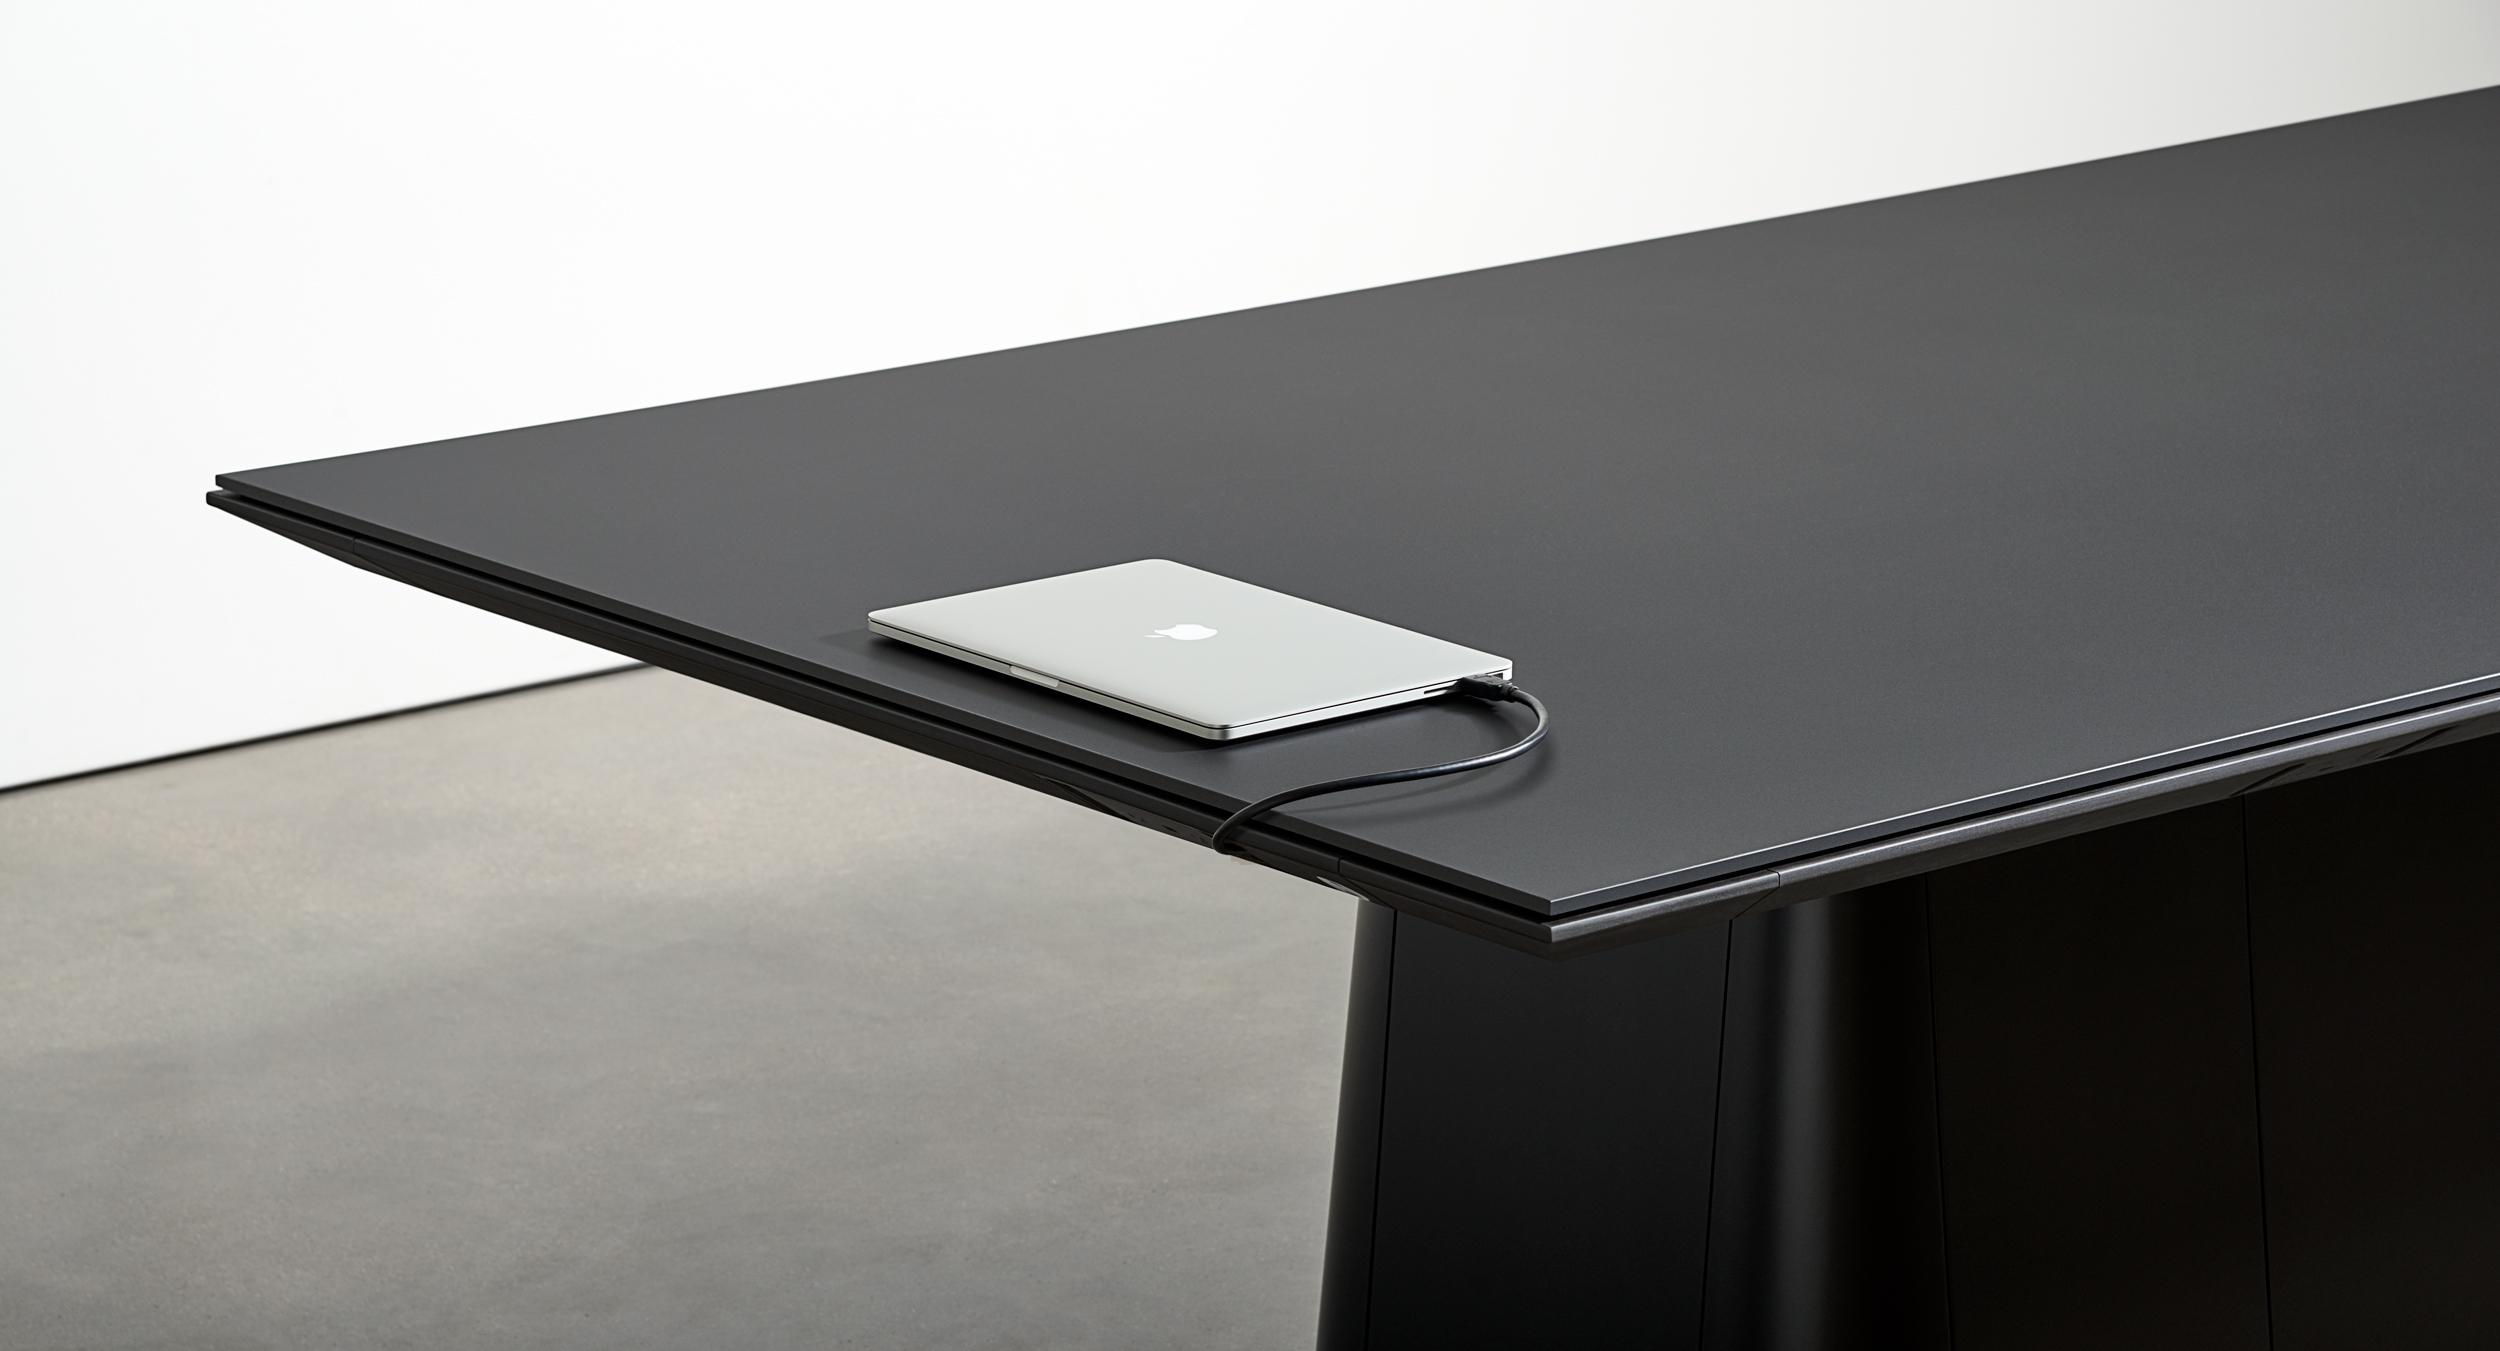 The revolutionary Halo soft edge provides protection for table and chair while delivering vital connectivity.